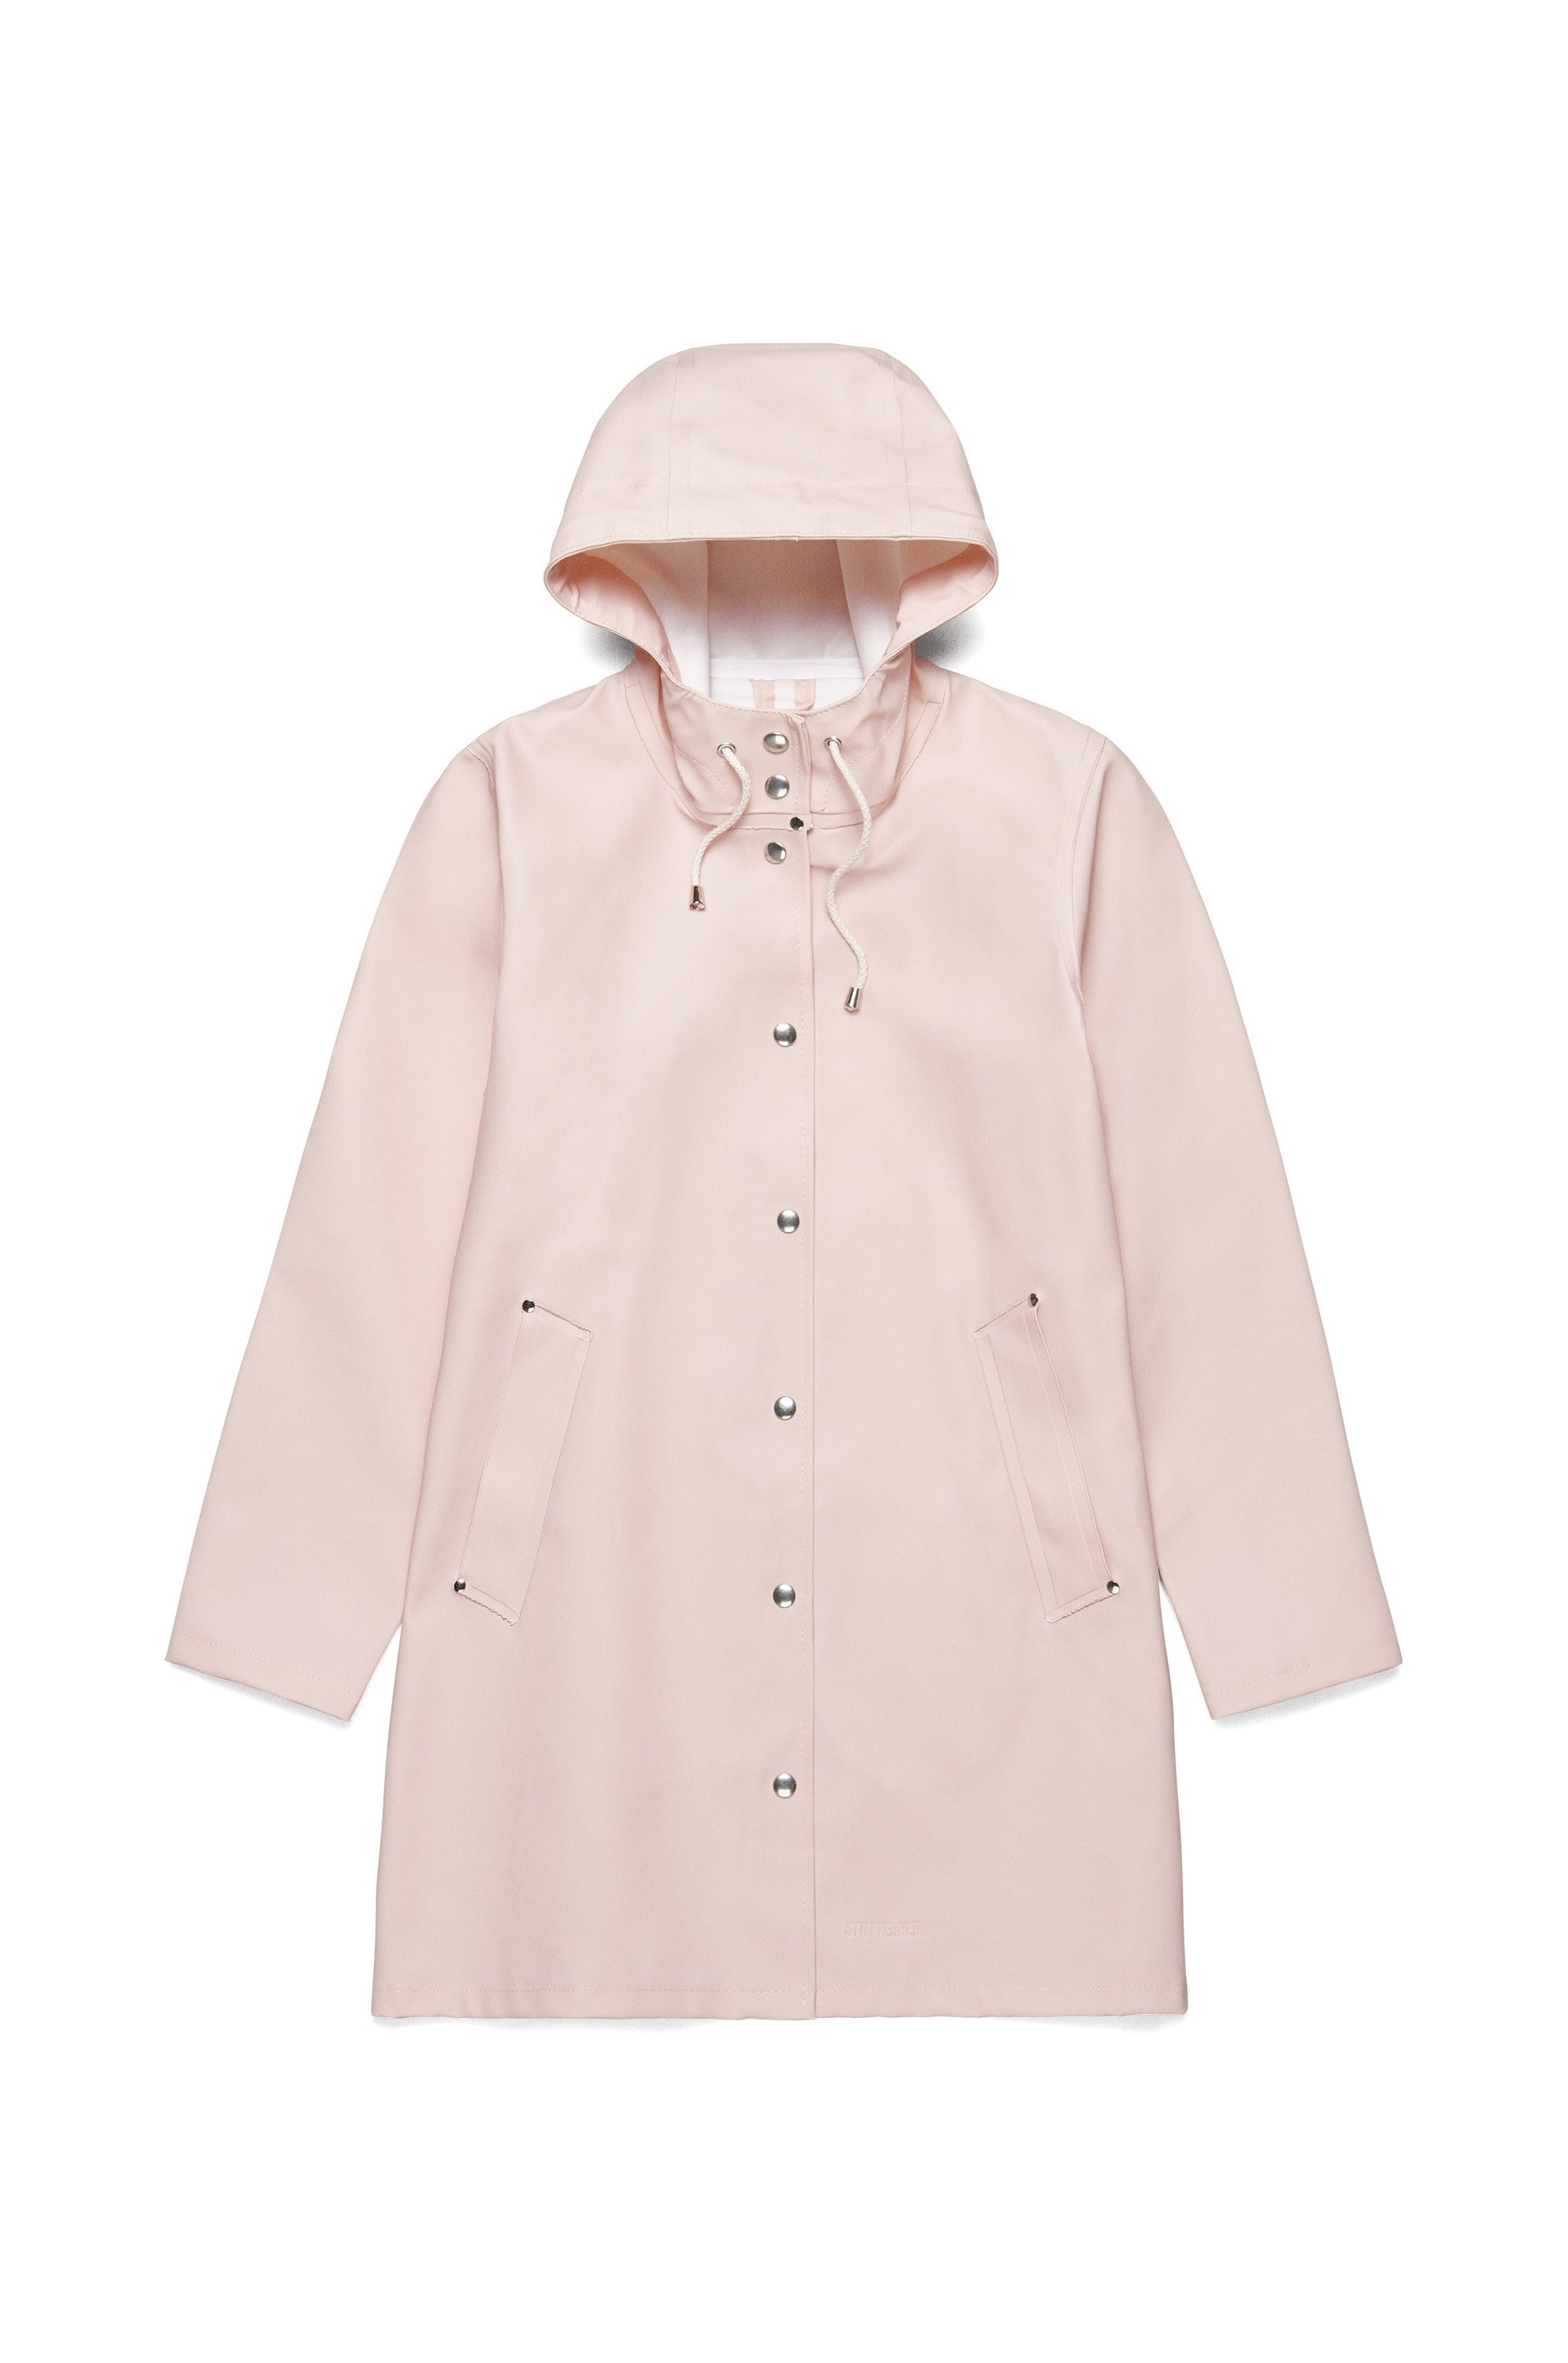 Stutterheim mosebacke pale pink rain jacket womens | pipe and row